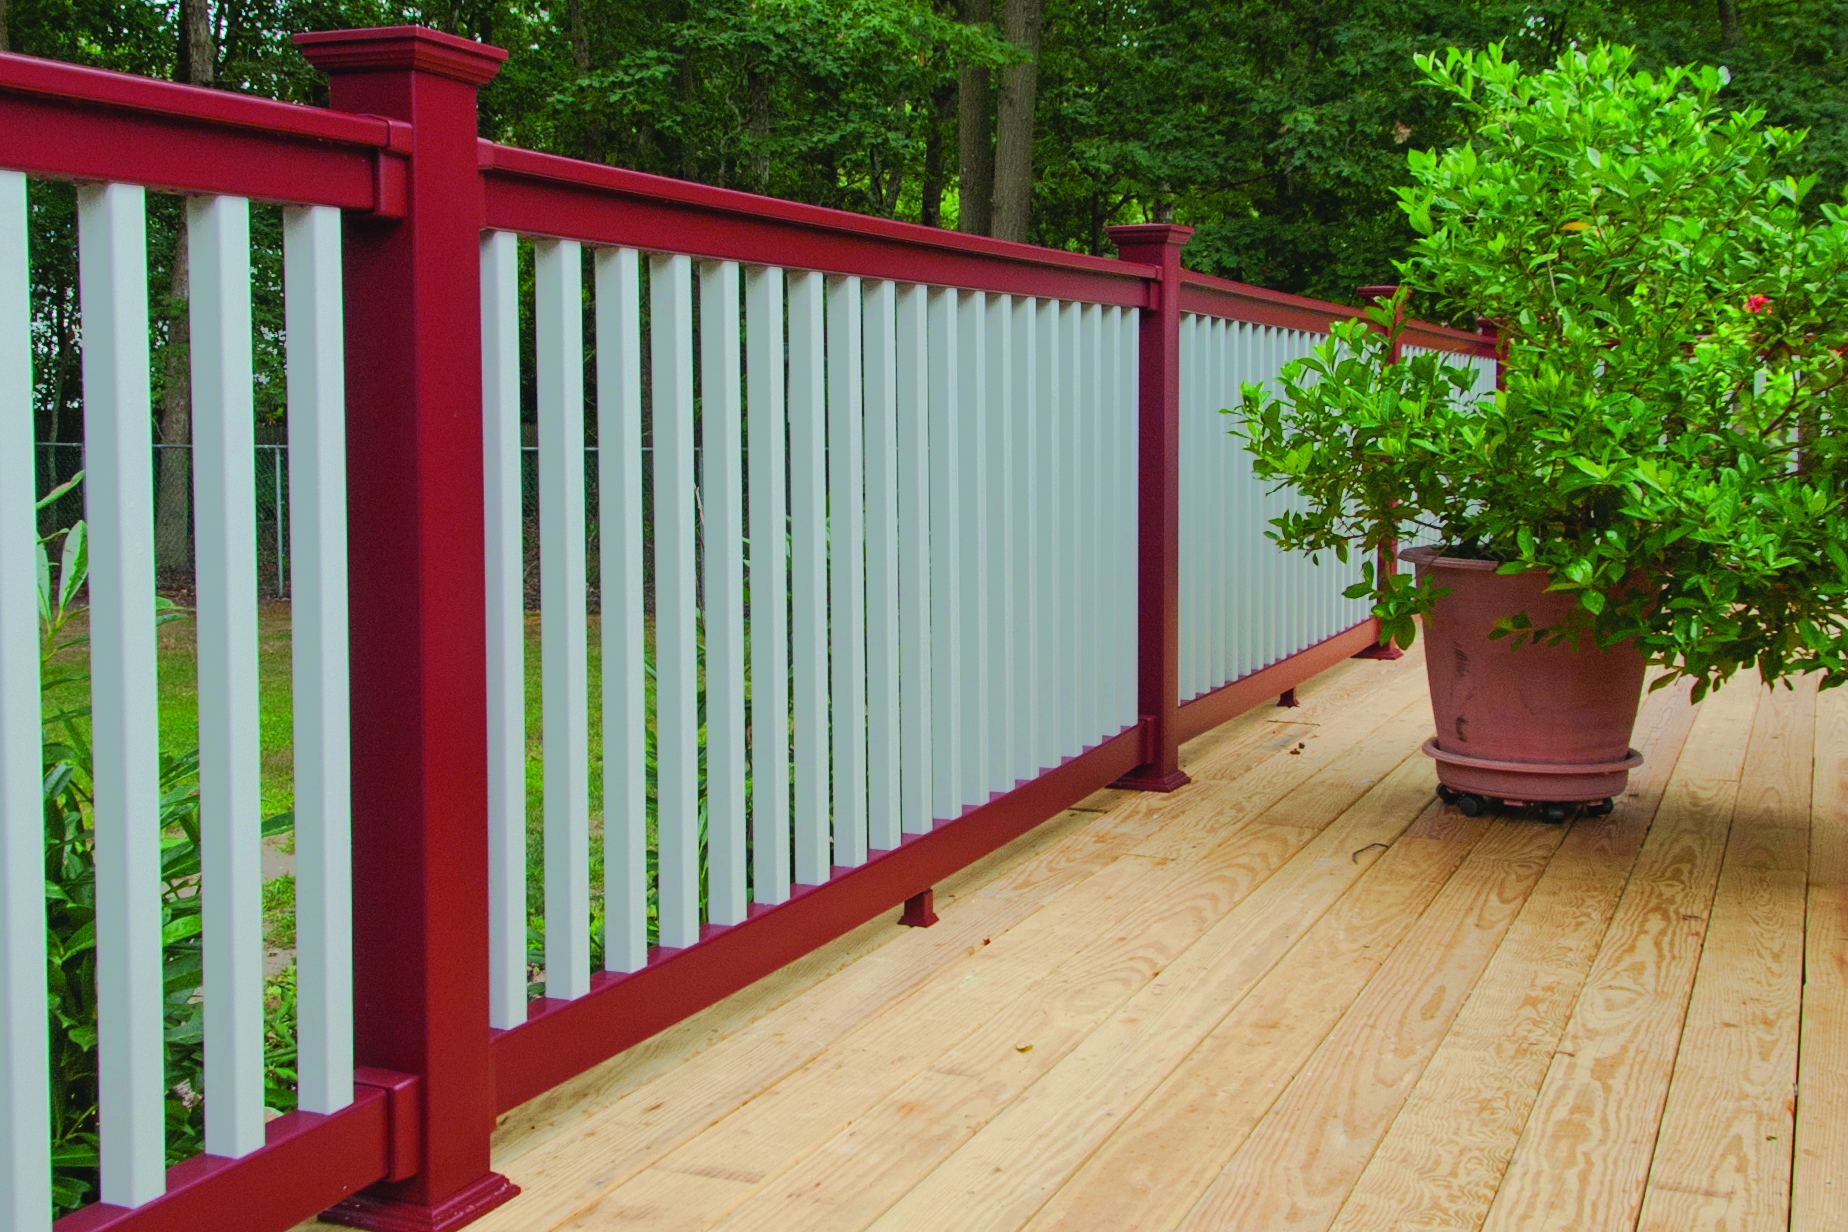 Pvc Vinyl Rail In 35 Colors Professional Deck Builder Fencing And Railing